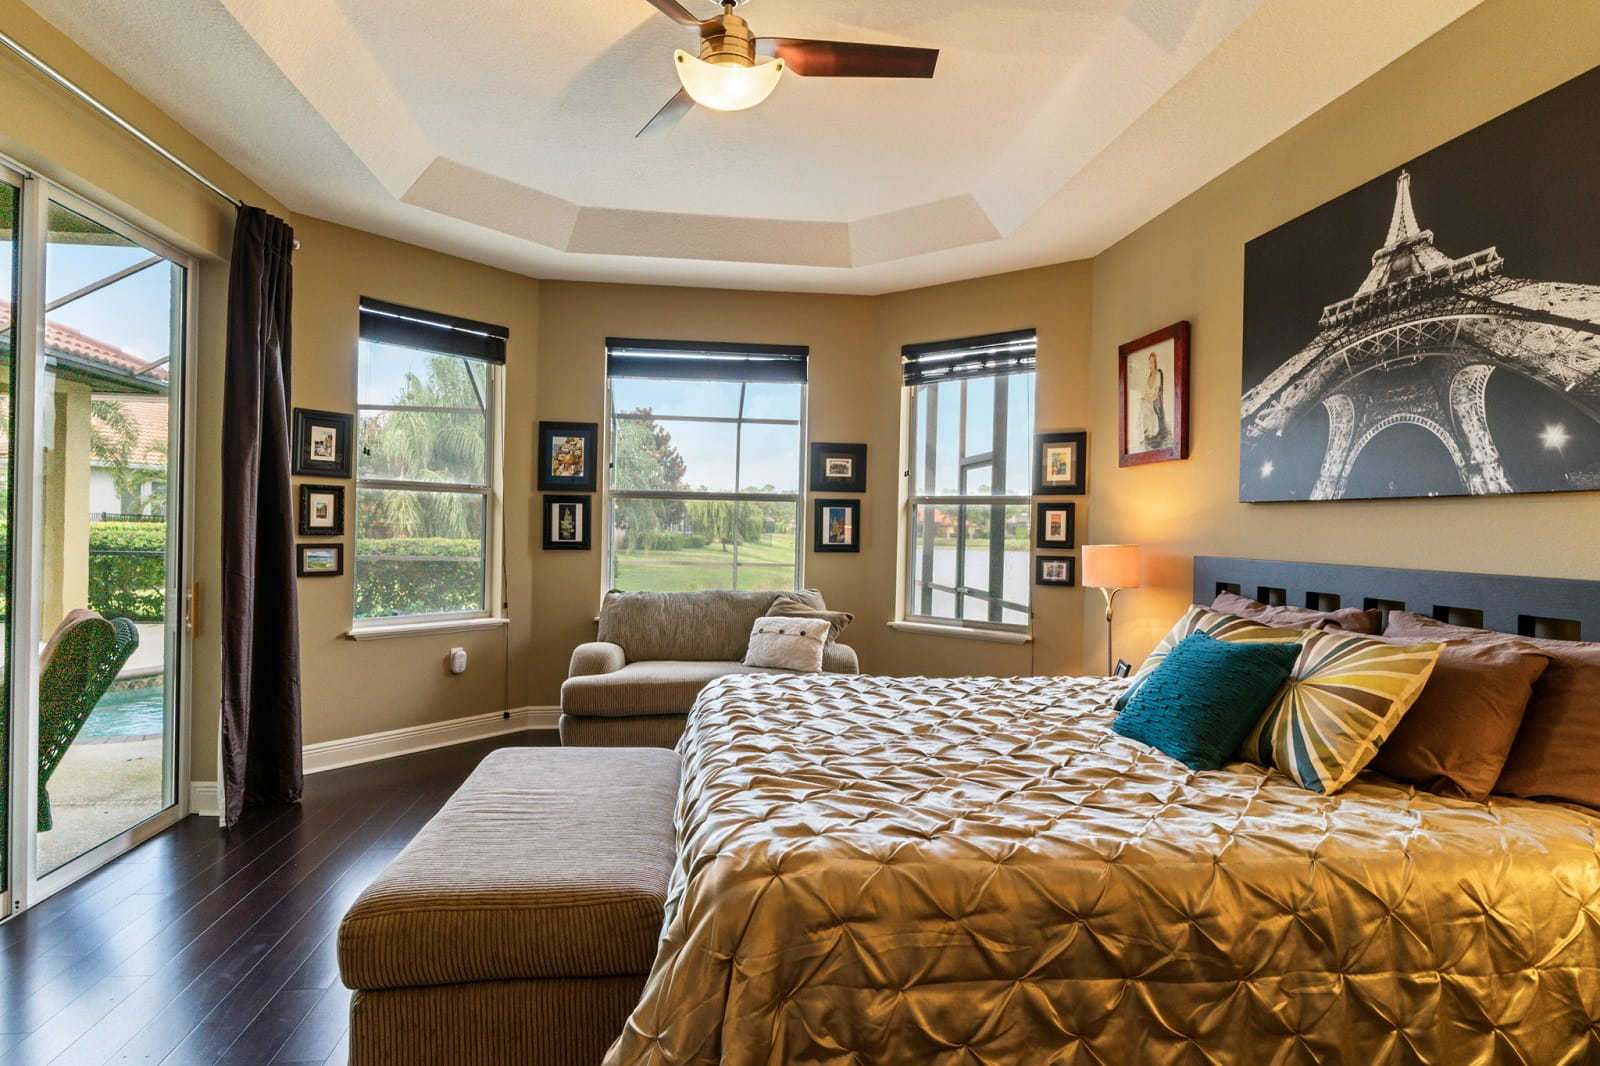 Real Estate Photography in Sarasota - FL - USA - Bedroom View